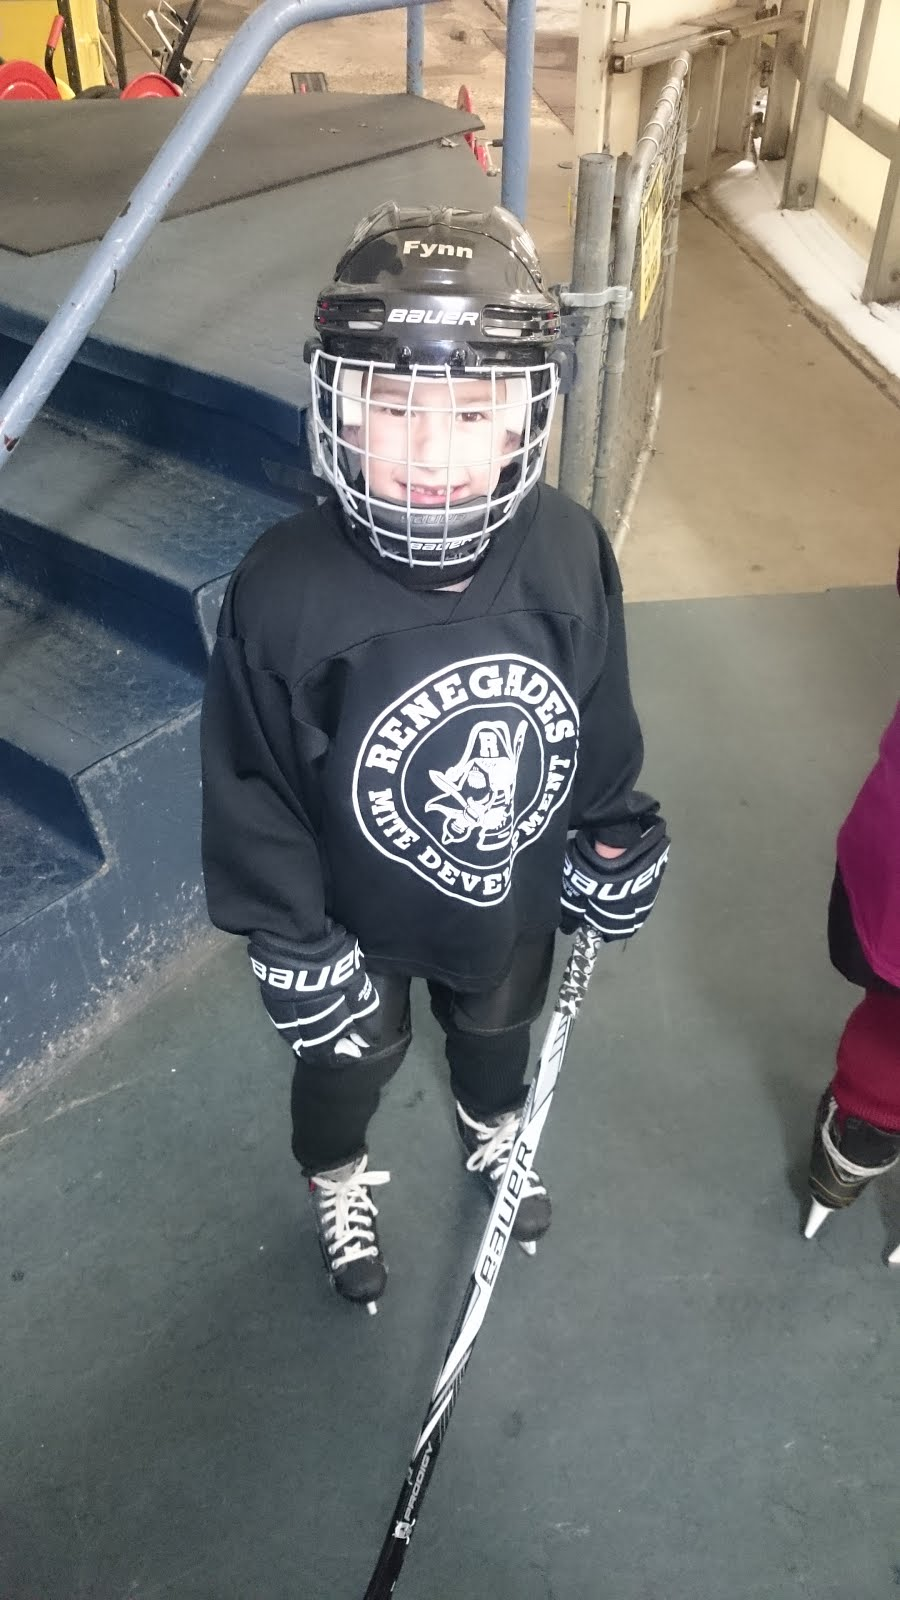 Fynn Plays Hockey